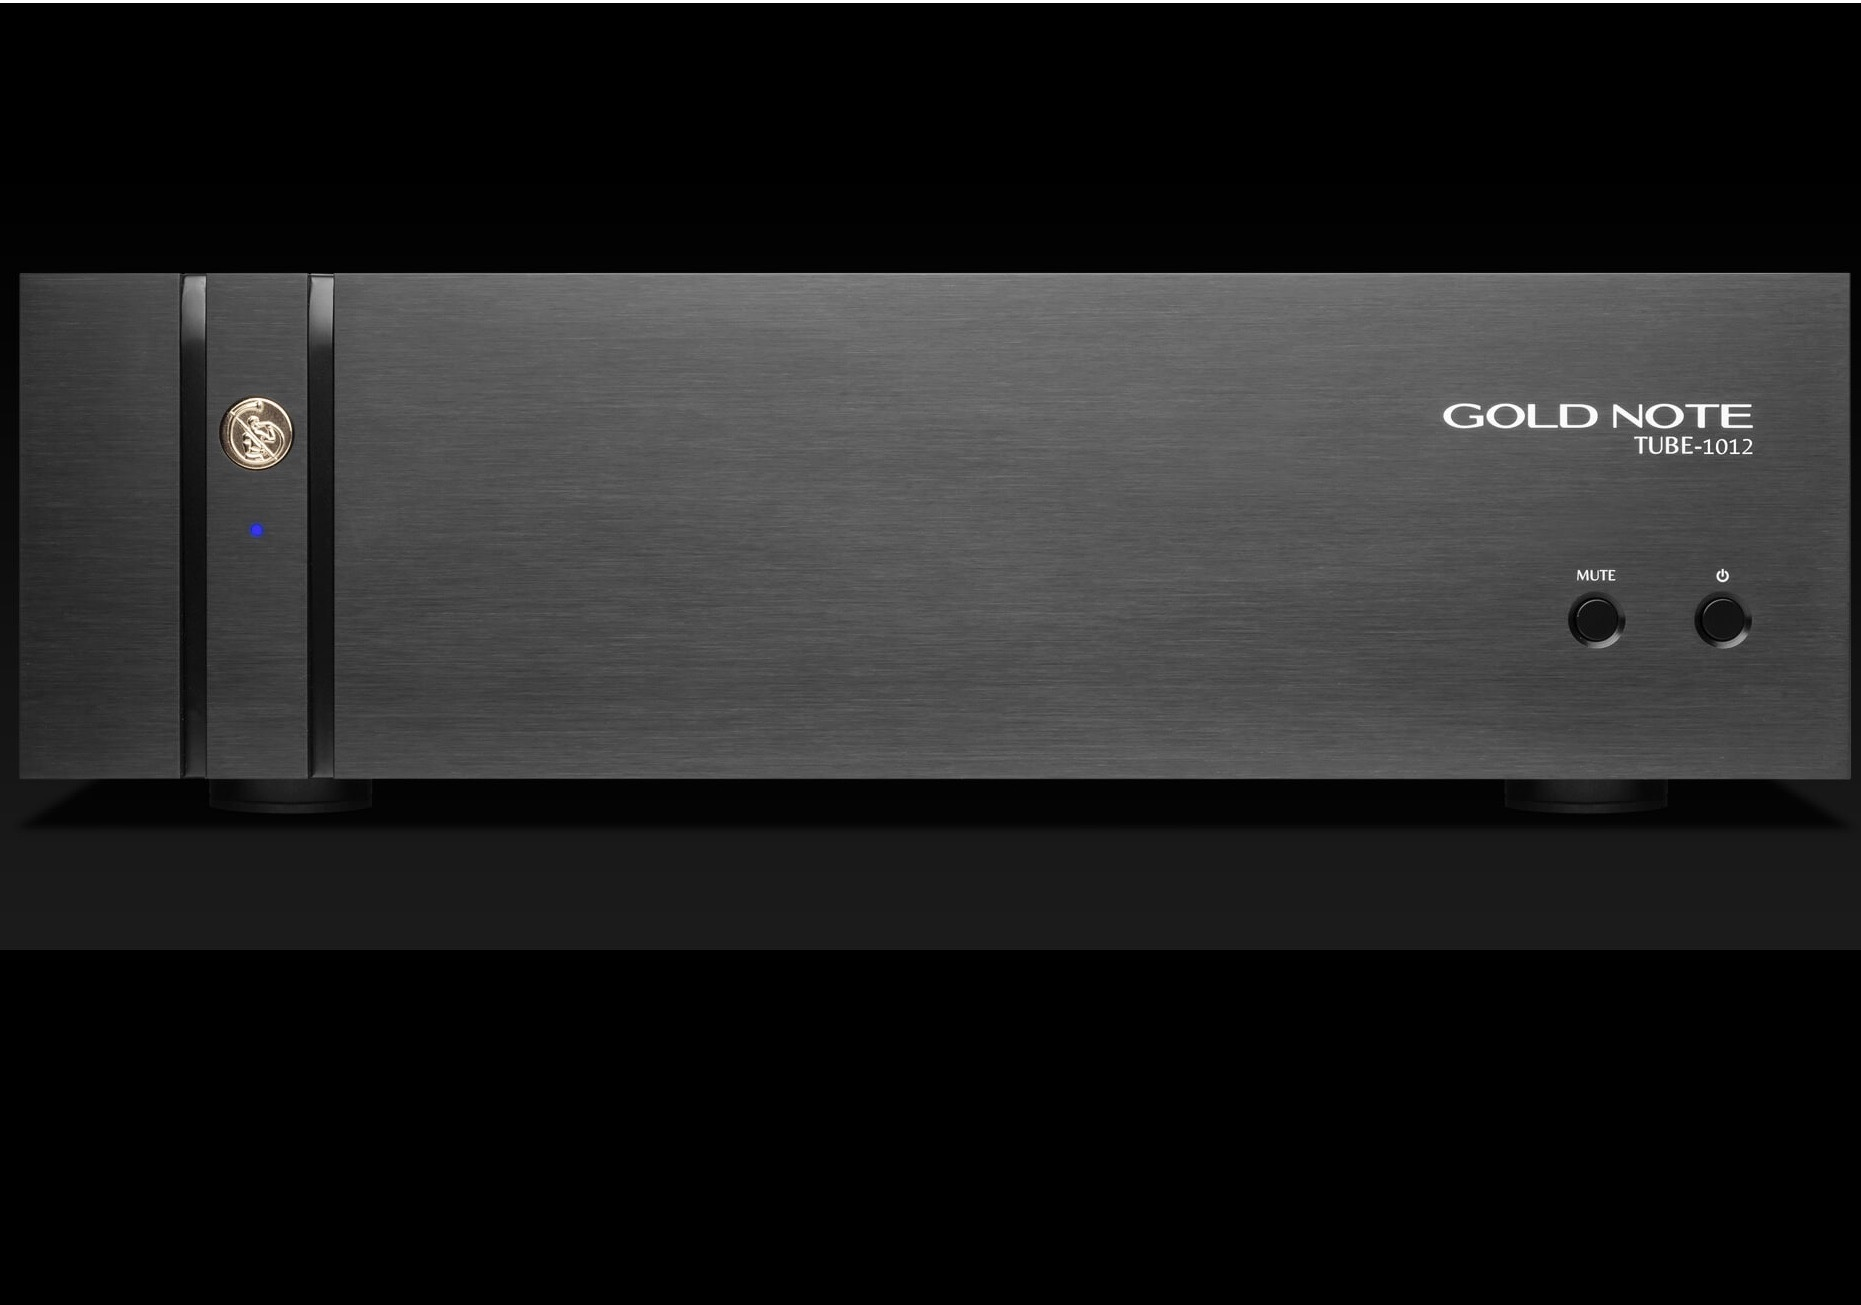 Gold Note TUBE-1012 Tube Stages